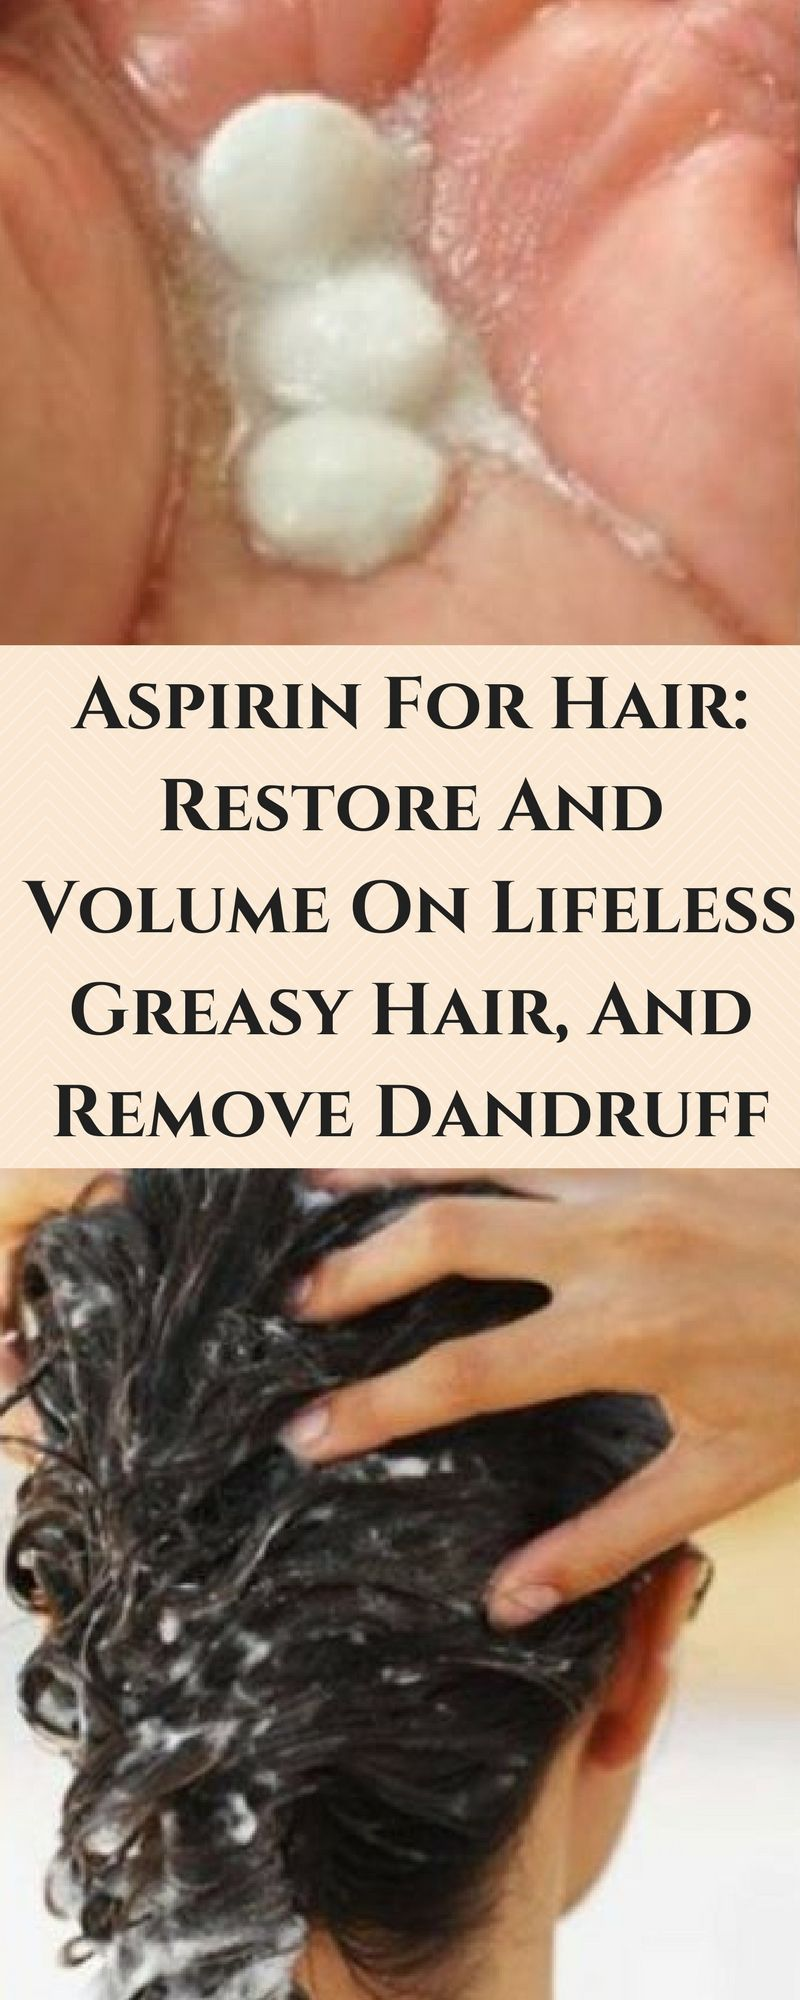 Pin by Helen on Hair and Beauty Aspirin for hair, Greasy